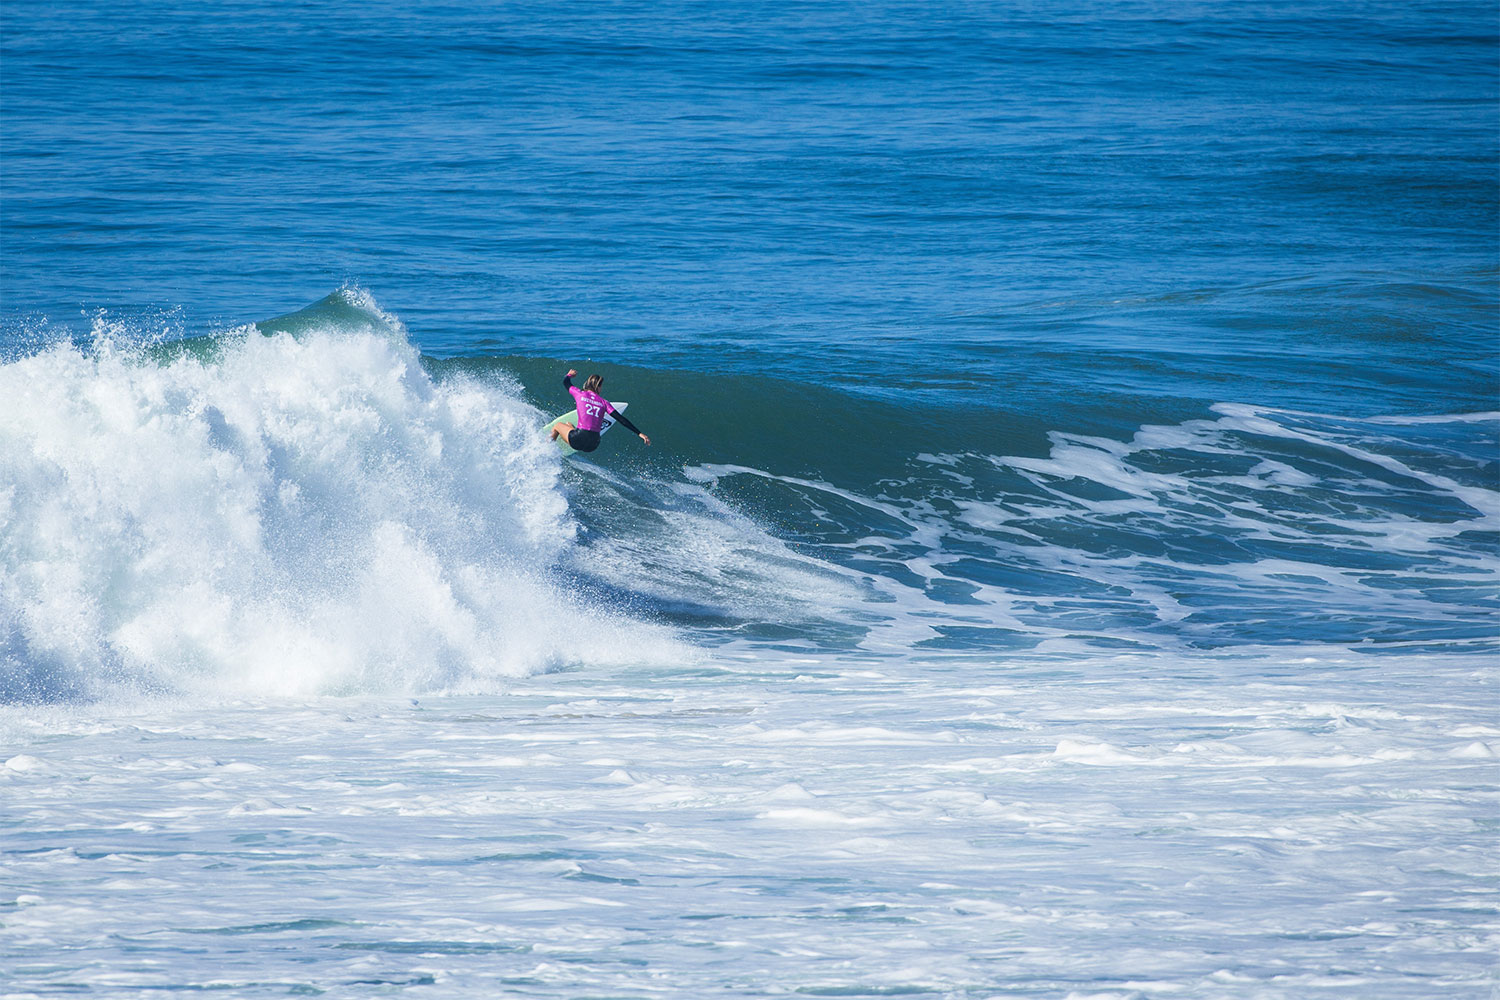 Day 1 of the #ROXYpro France